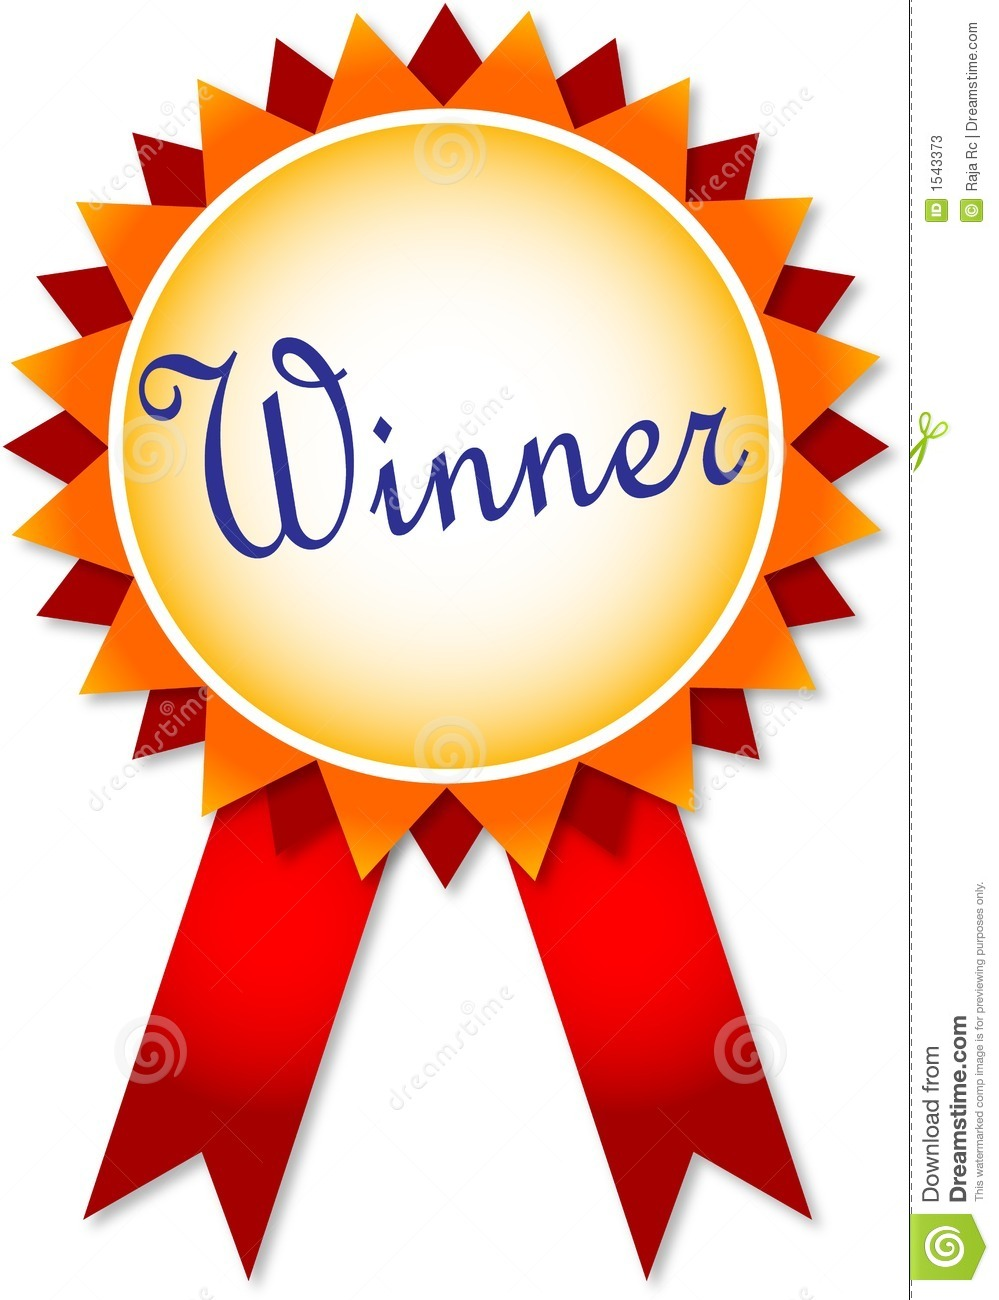 Funny Prize Winner Clipart - Clipart Kid